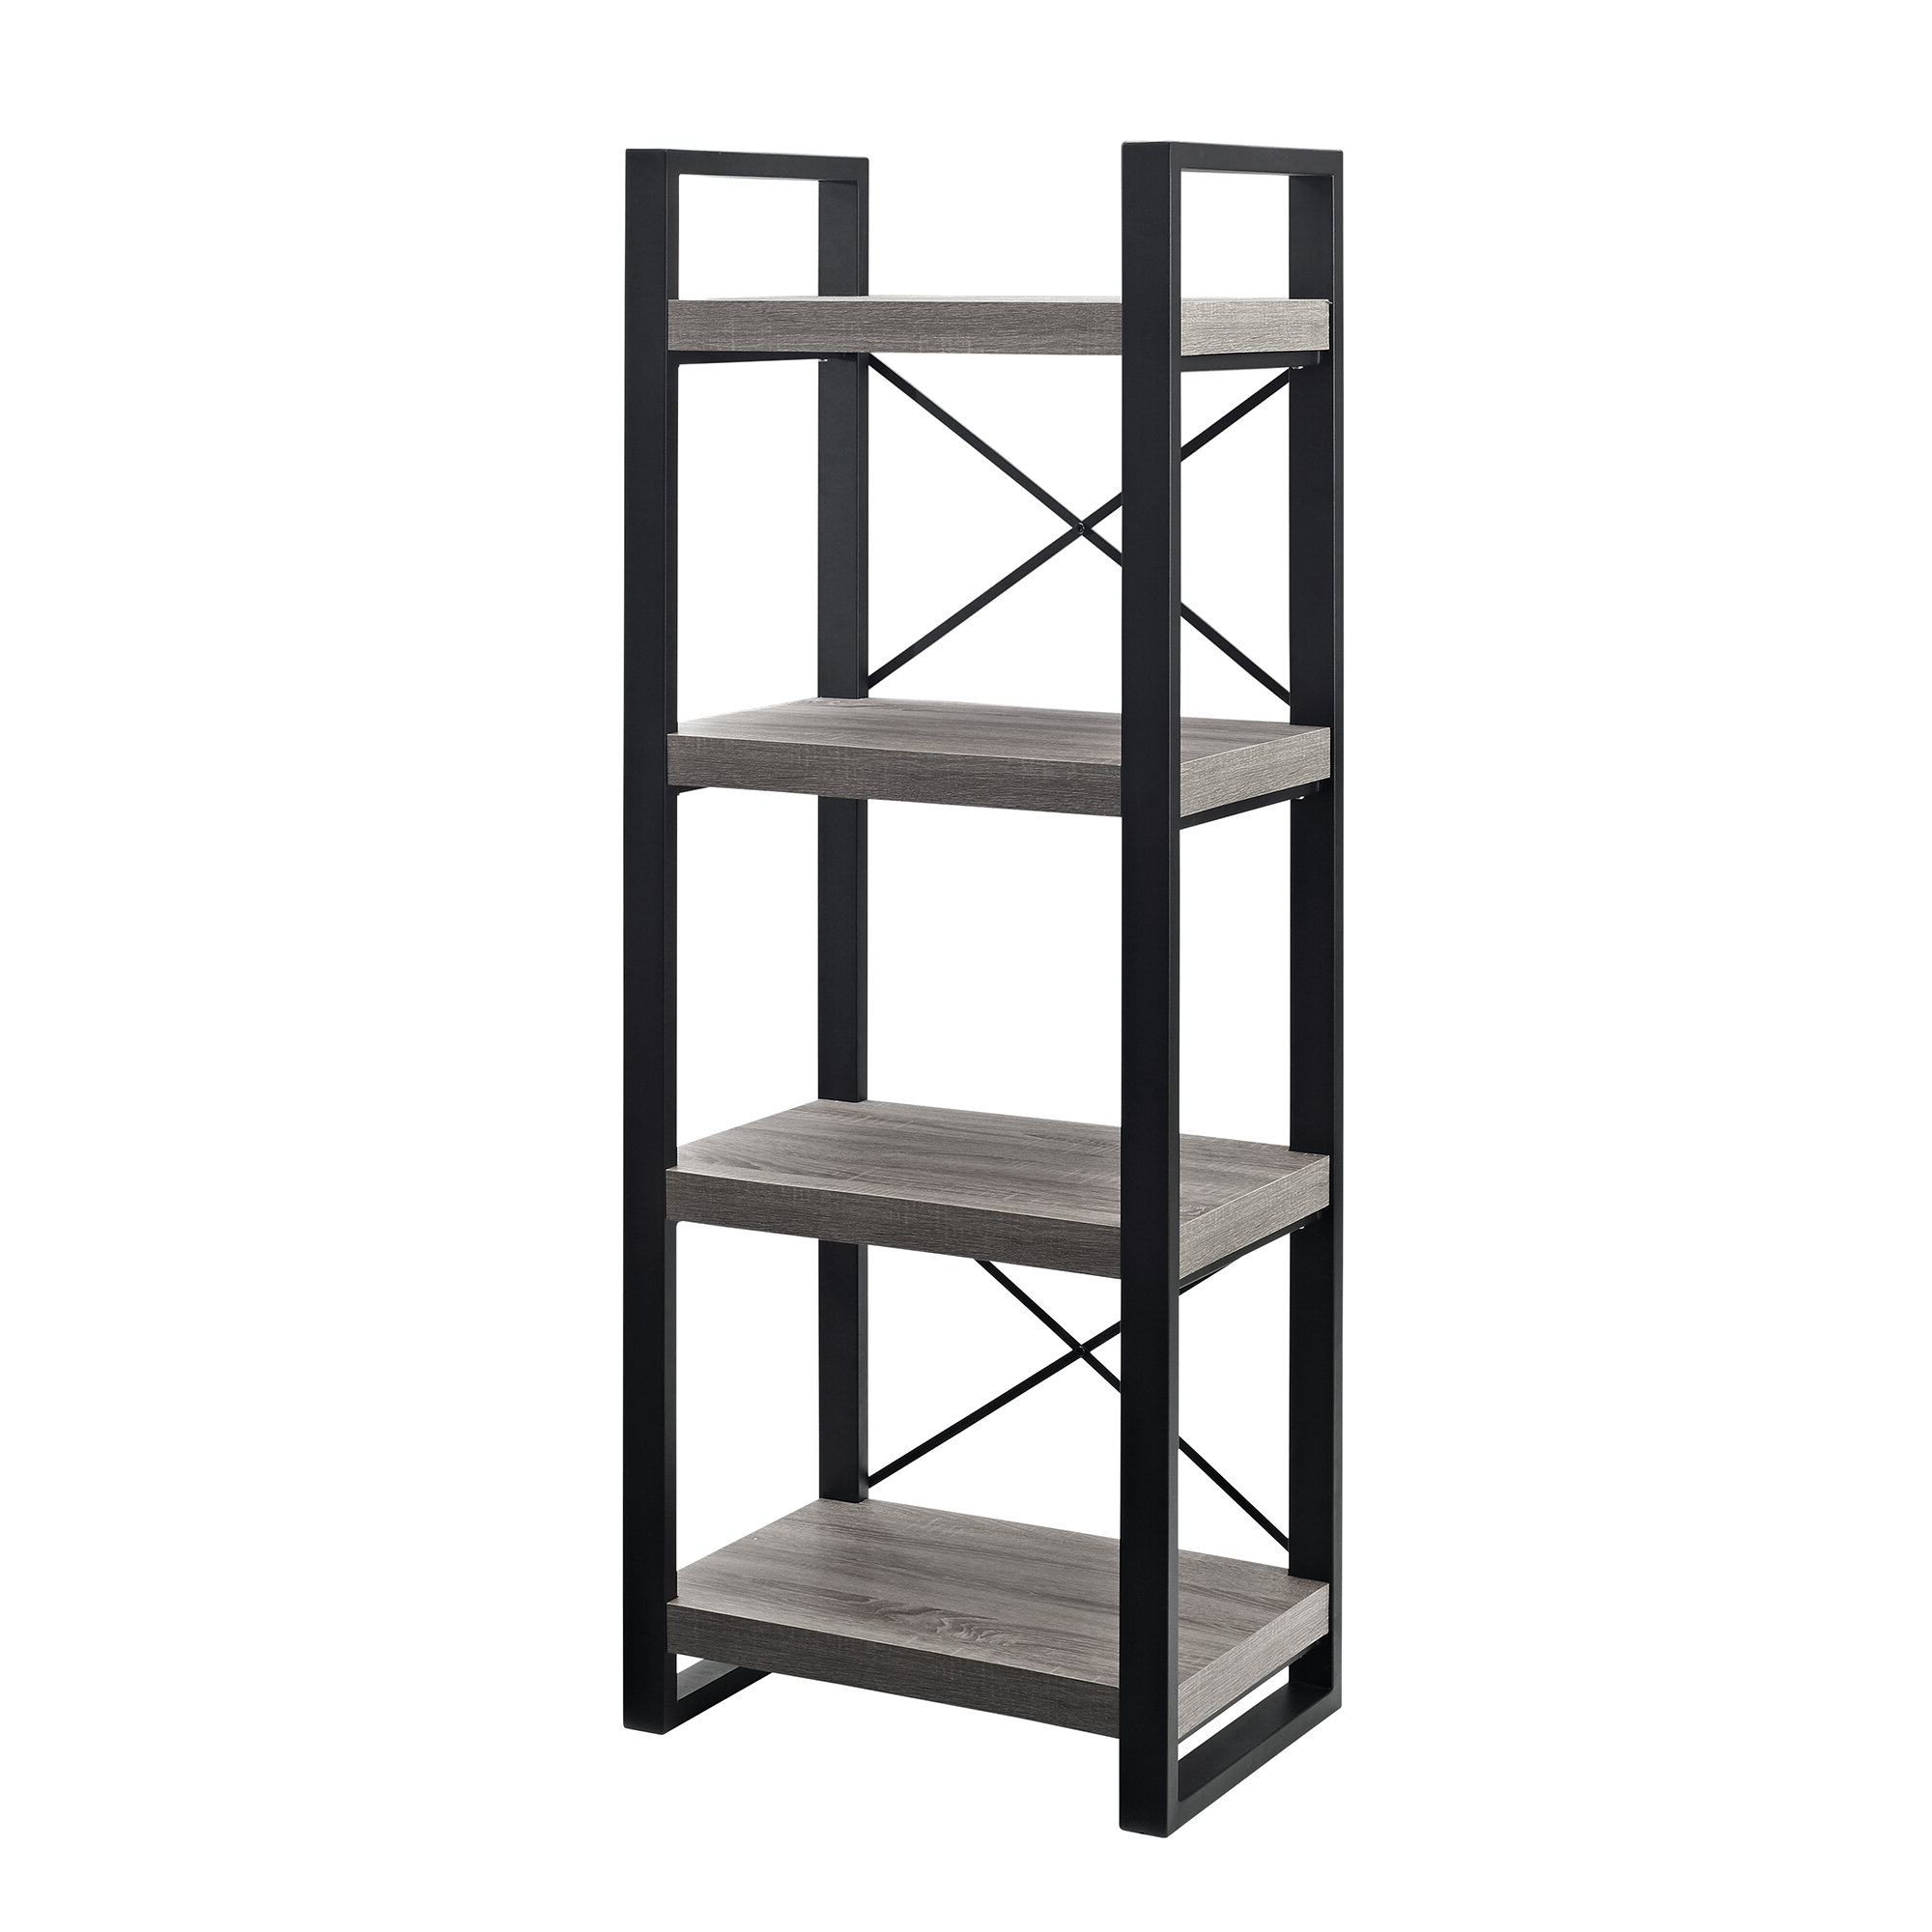 Bowman Etagere Bookcases With Regard To Latest Rossman Etagere Bookcase (Gallery 13 of 20)